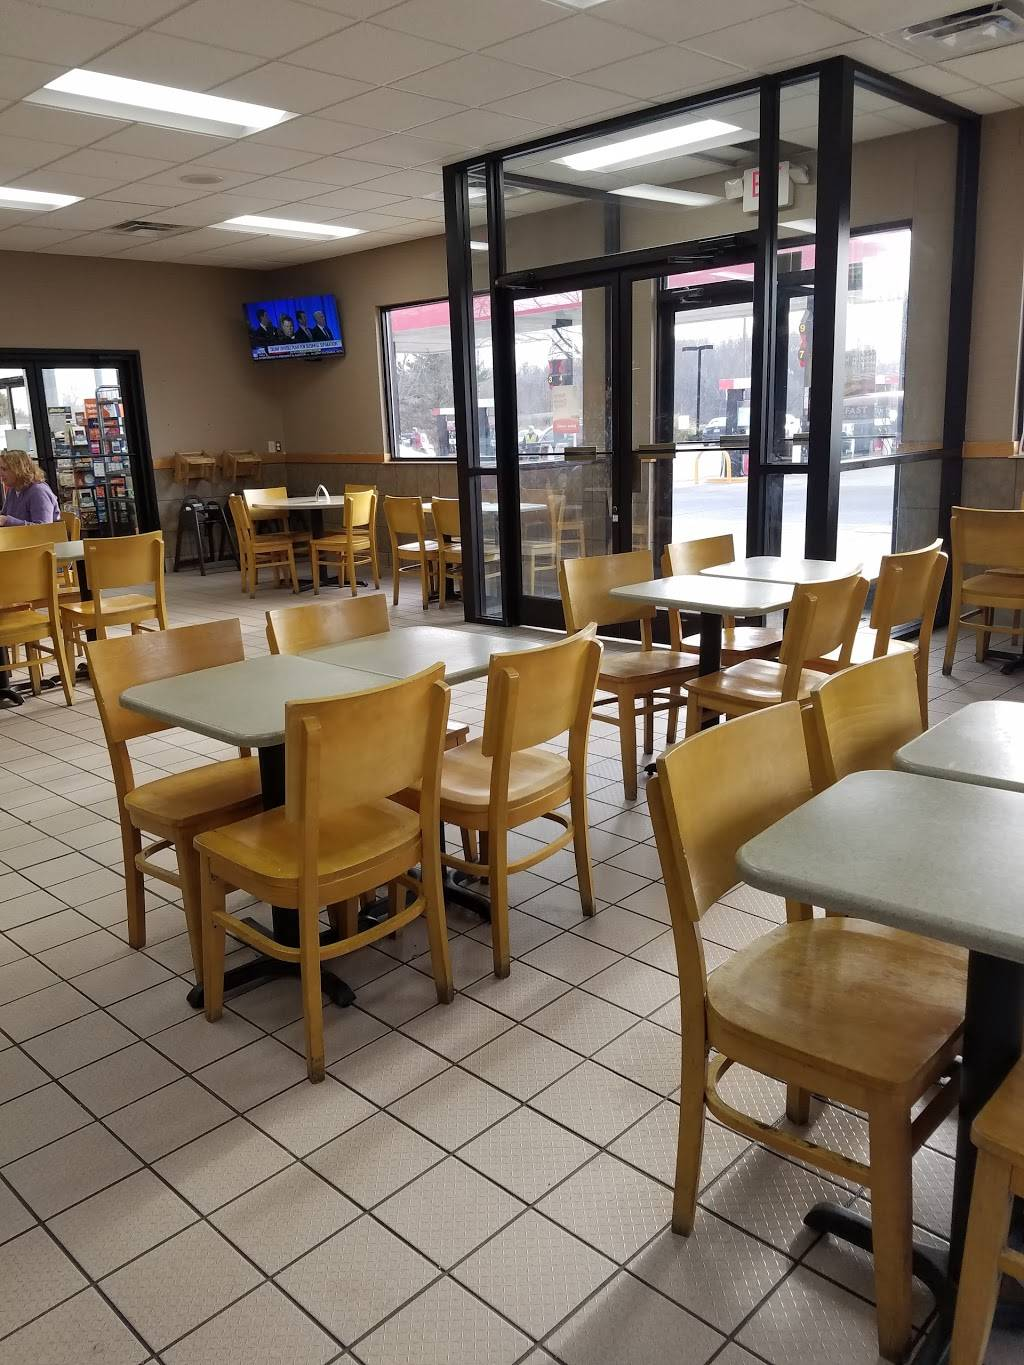 Wendys - restaurant  | Photo 1 of 10 | Address: 907 Knox Rd, McLeansville, NC 27301, USA | Phone: (336) 698-9445